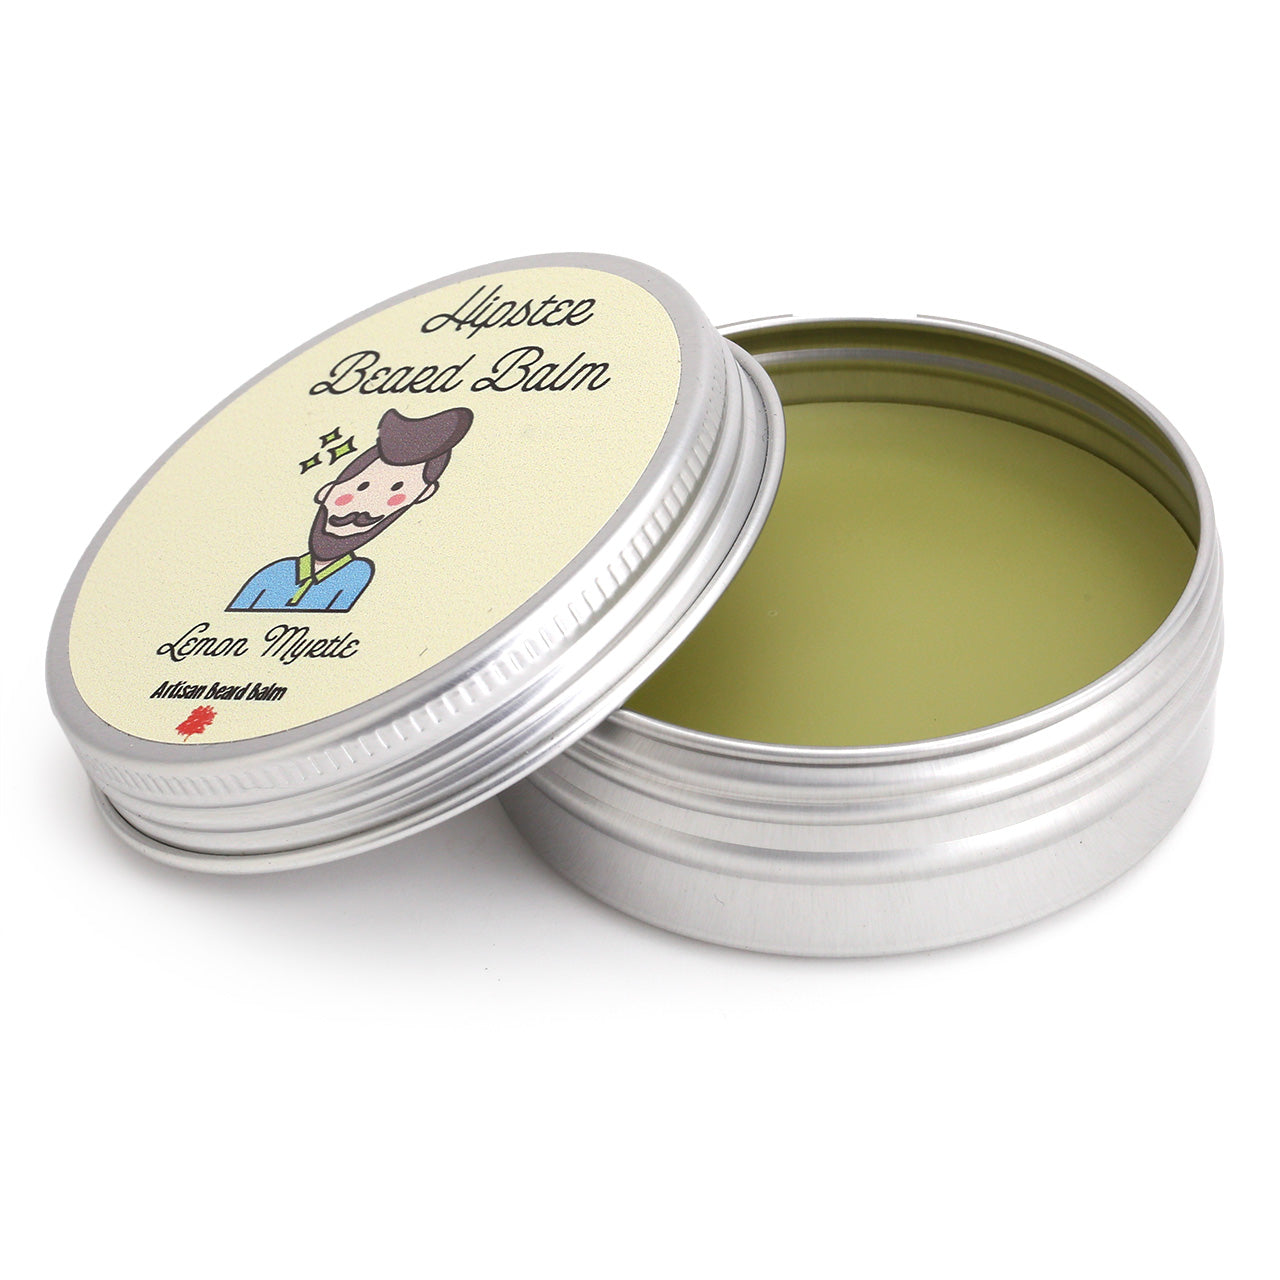 Whispers from The Woods Beard Balm - Lemon Myrtle